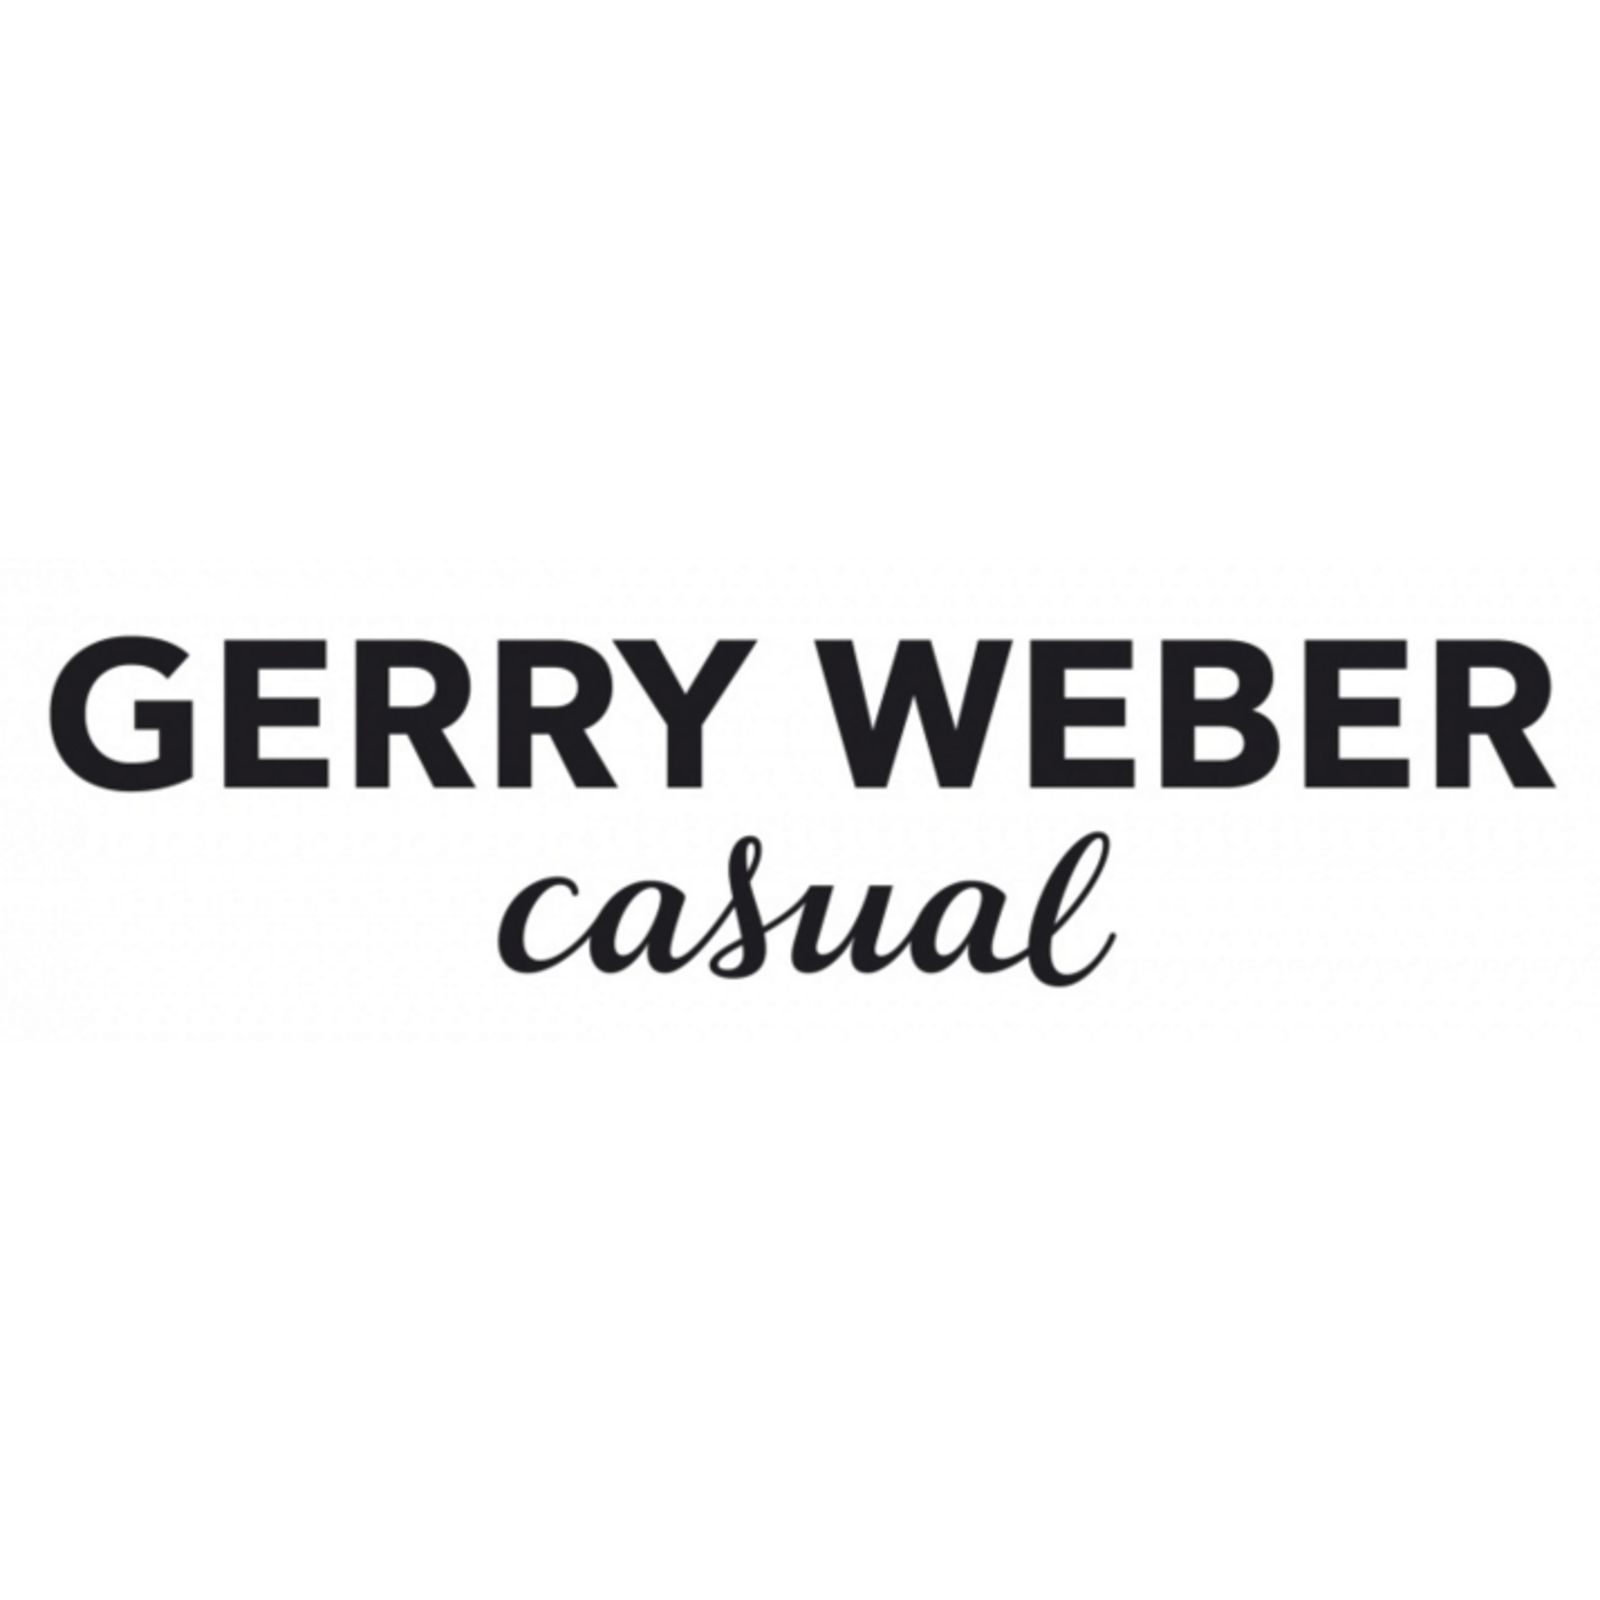 GERRY WEBER Casual (Bild 1)